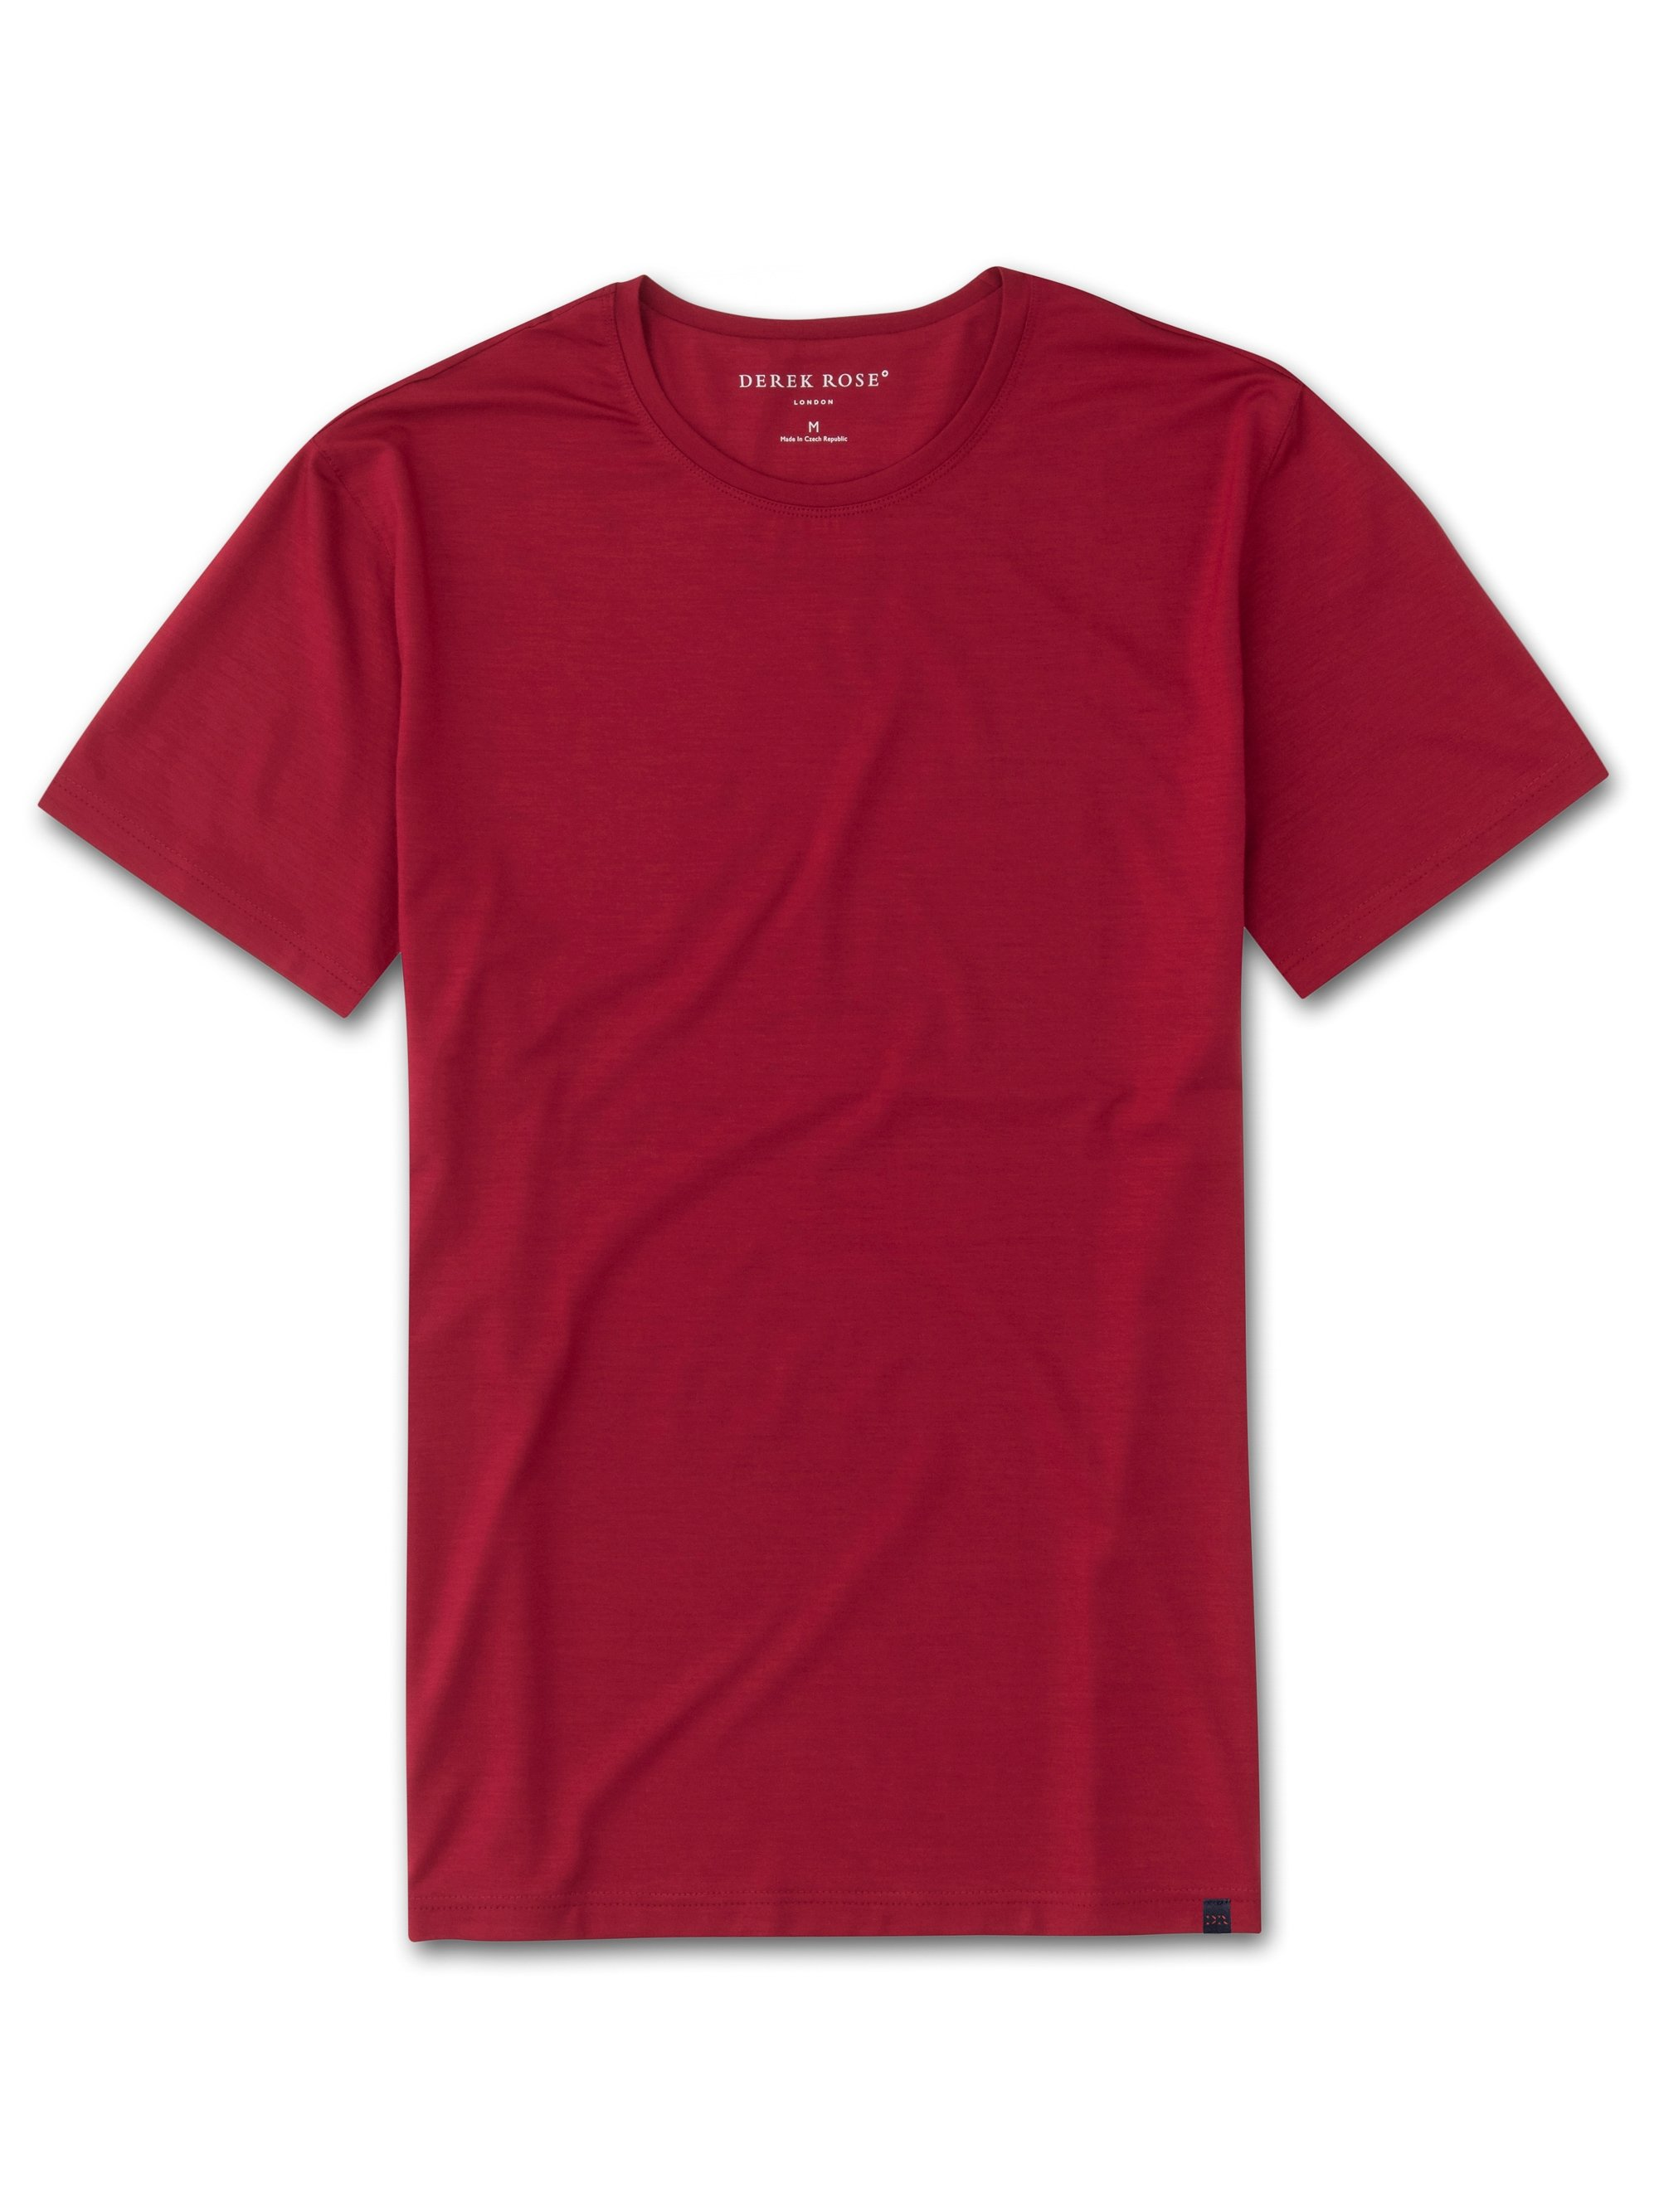 Men's Short Sleeve T-Shirt Basel 8 Micro Modal Stretch Red